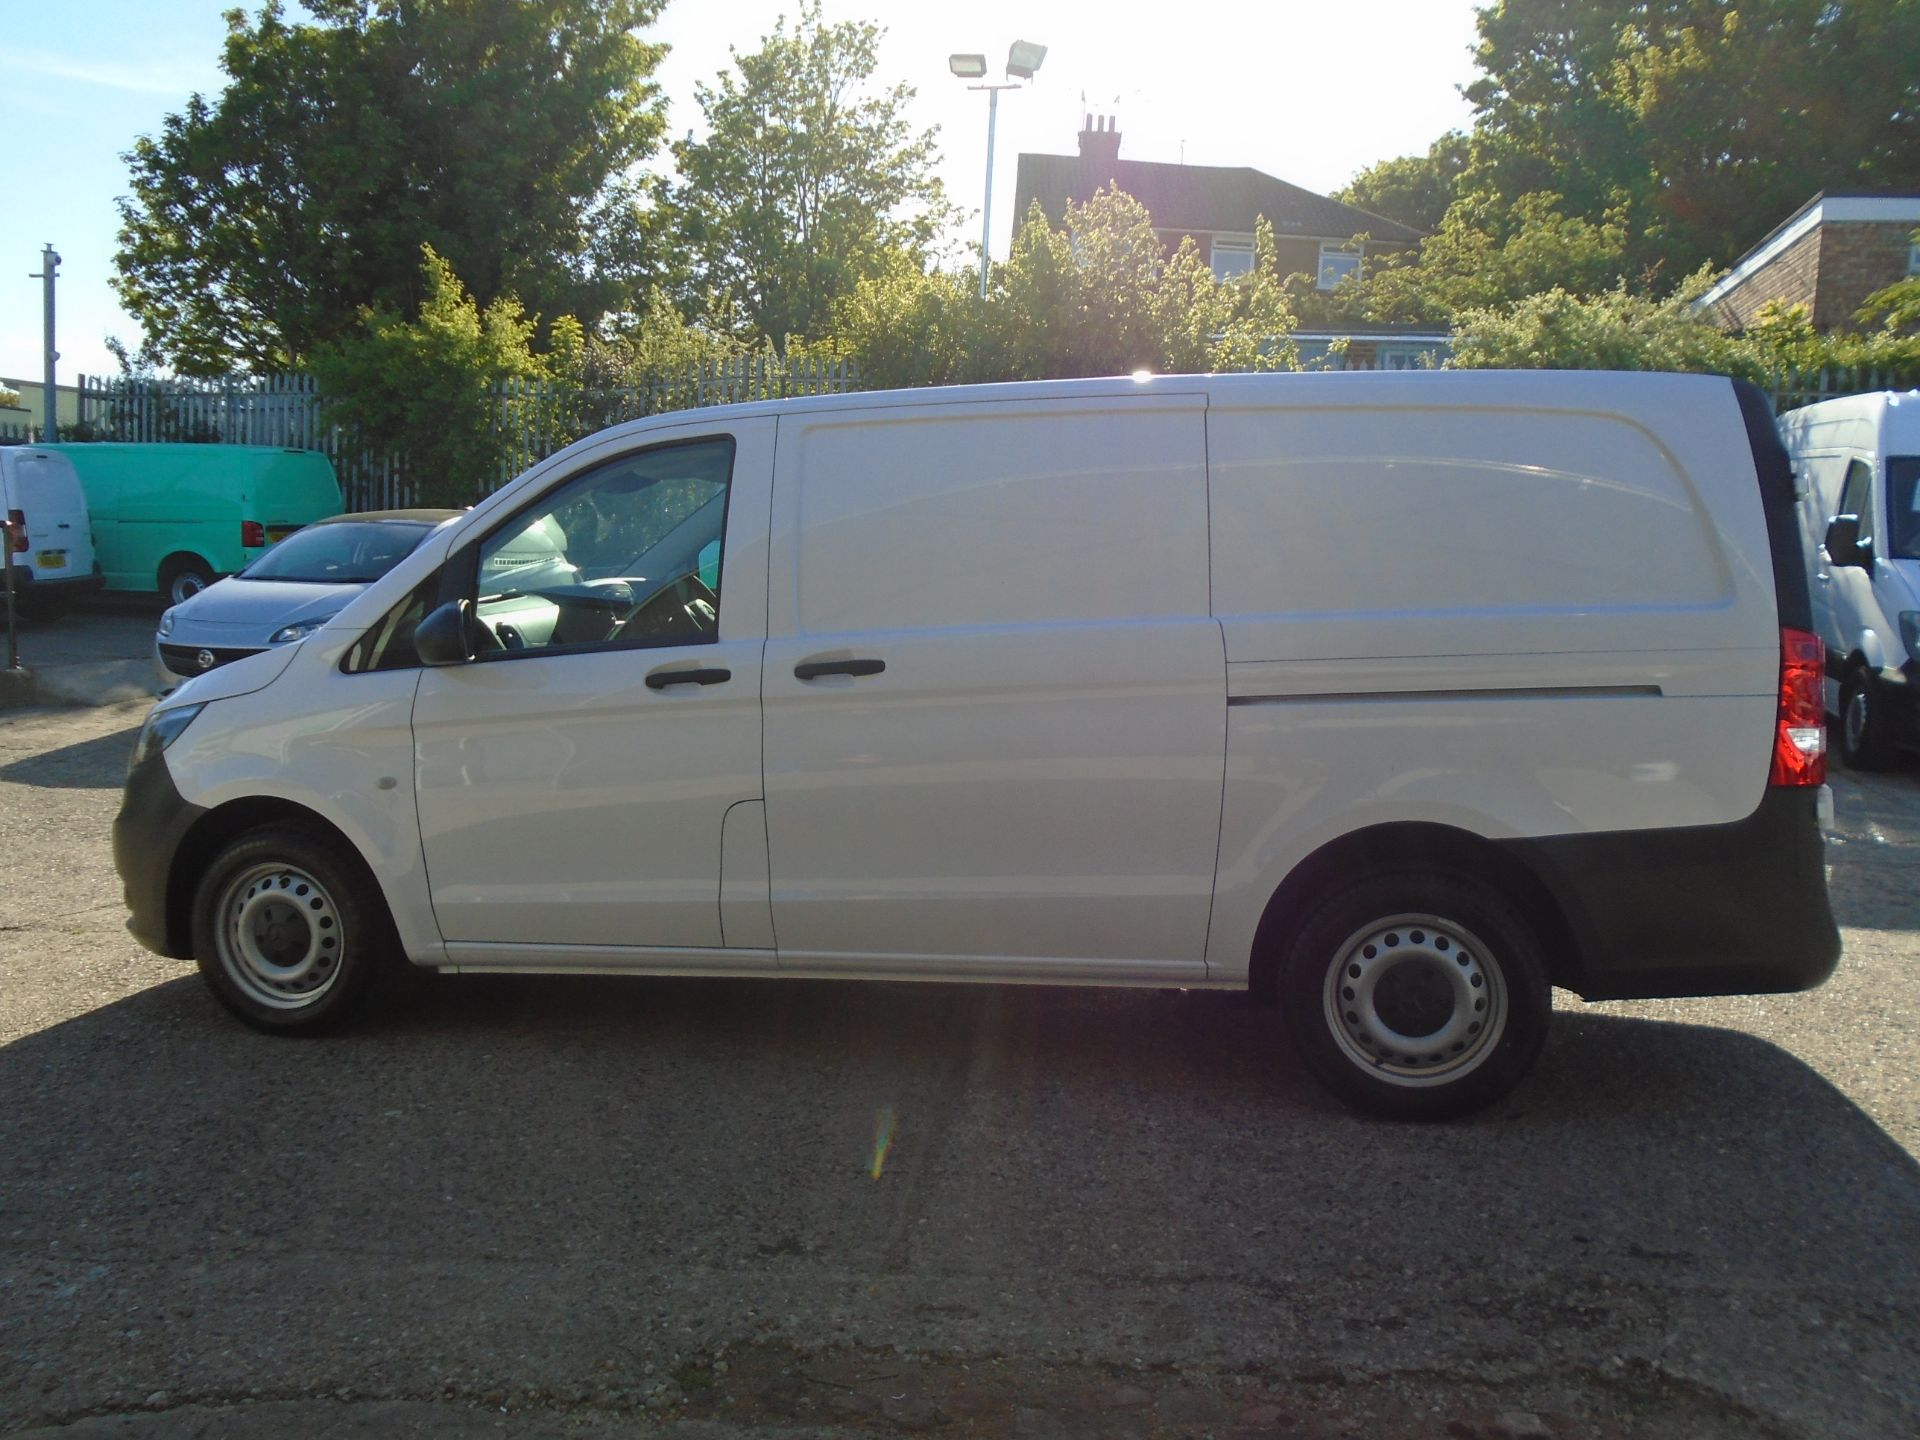 2019 Mercedes-Benz Vito  111Cdi Van Euro 6 Massive specification A/C Air Con, Delivery Miles Only (YN19ZFR) Image 8